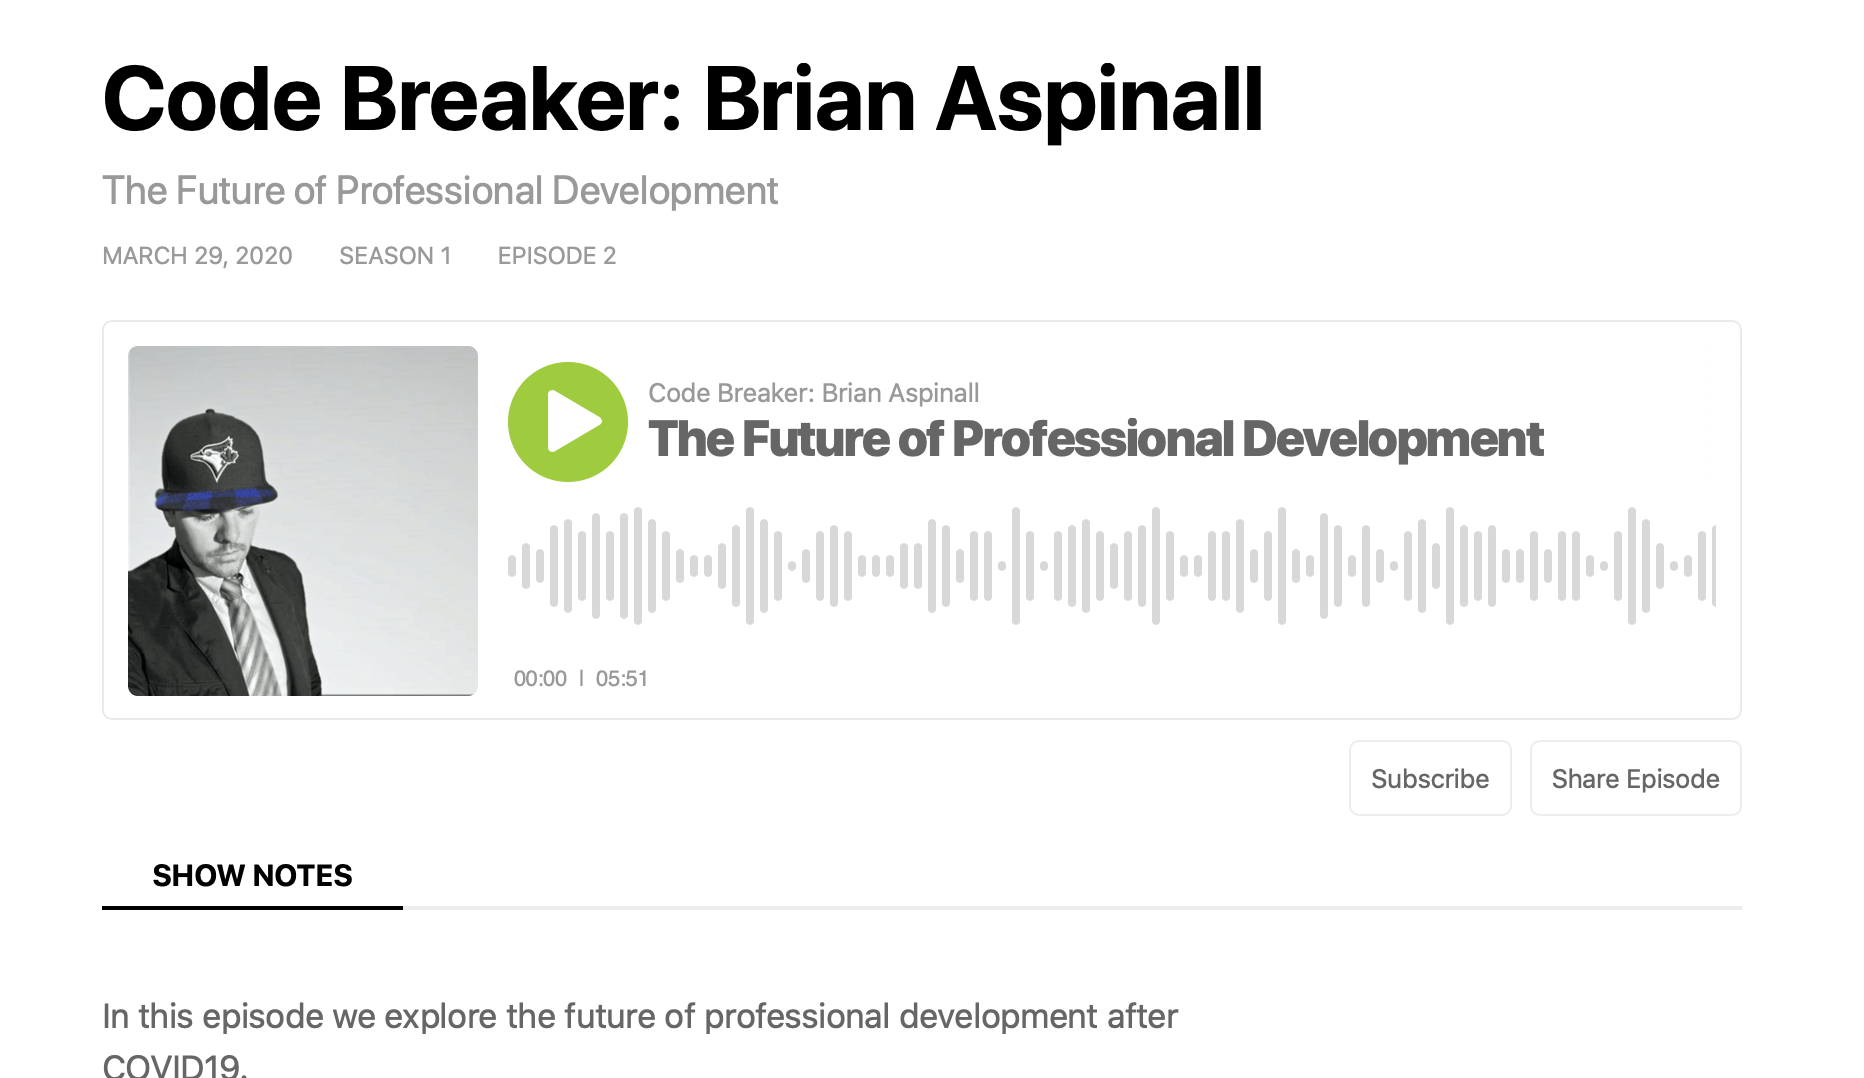 The Future of Professional Development: Podcast